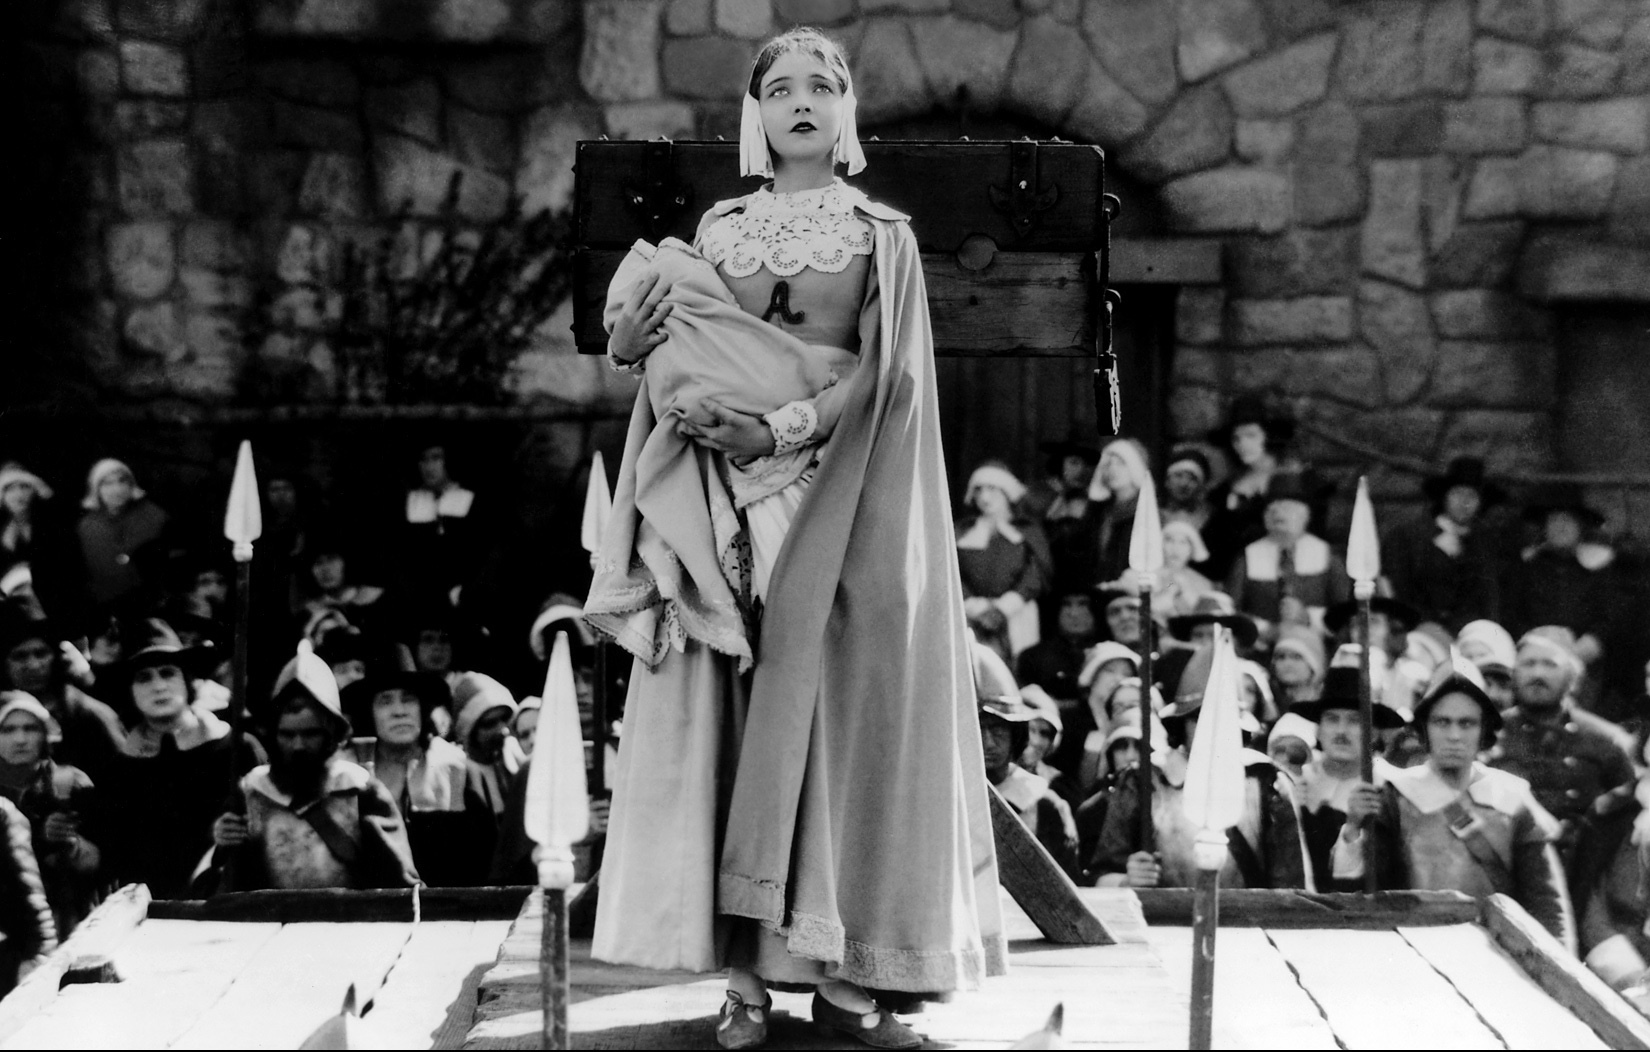 lillian gish images the scarlet letter hd and background  lillian gish images the scarlet letter hd and background photos